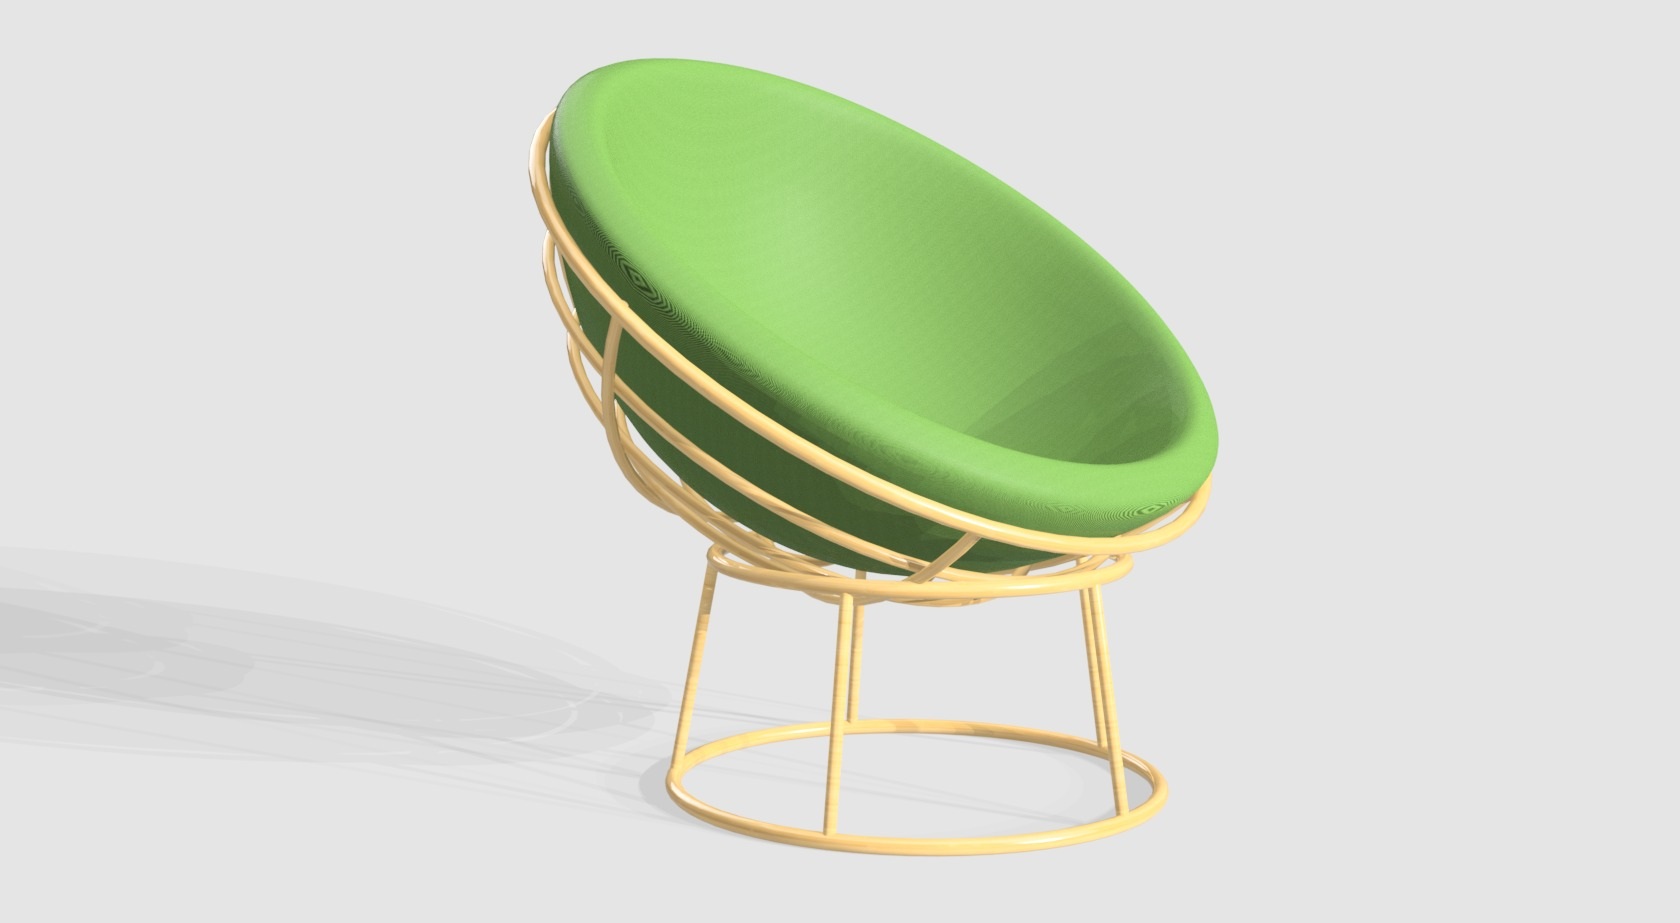 furniture 360 autodesk online gallery